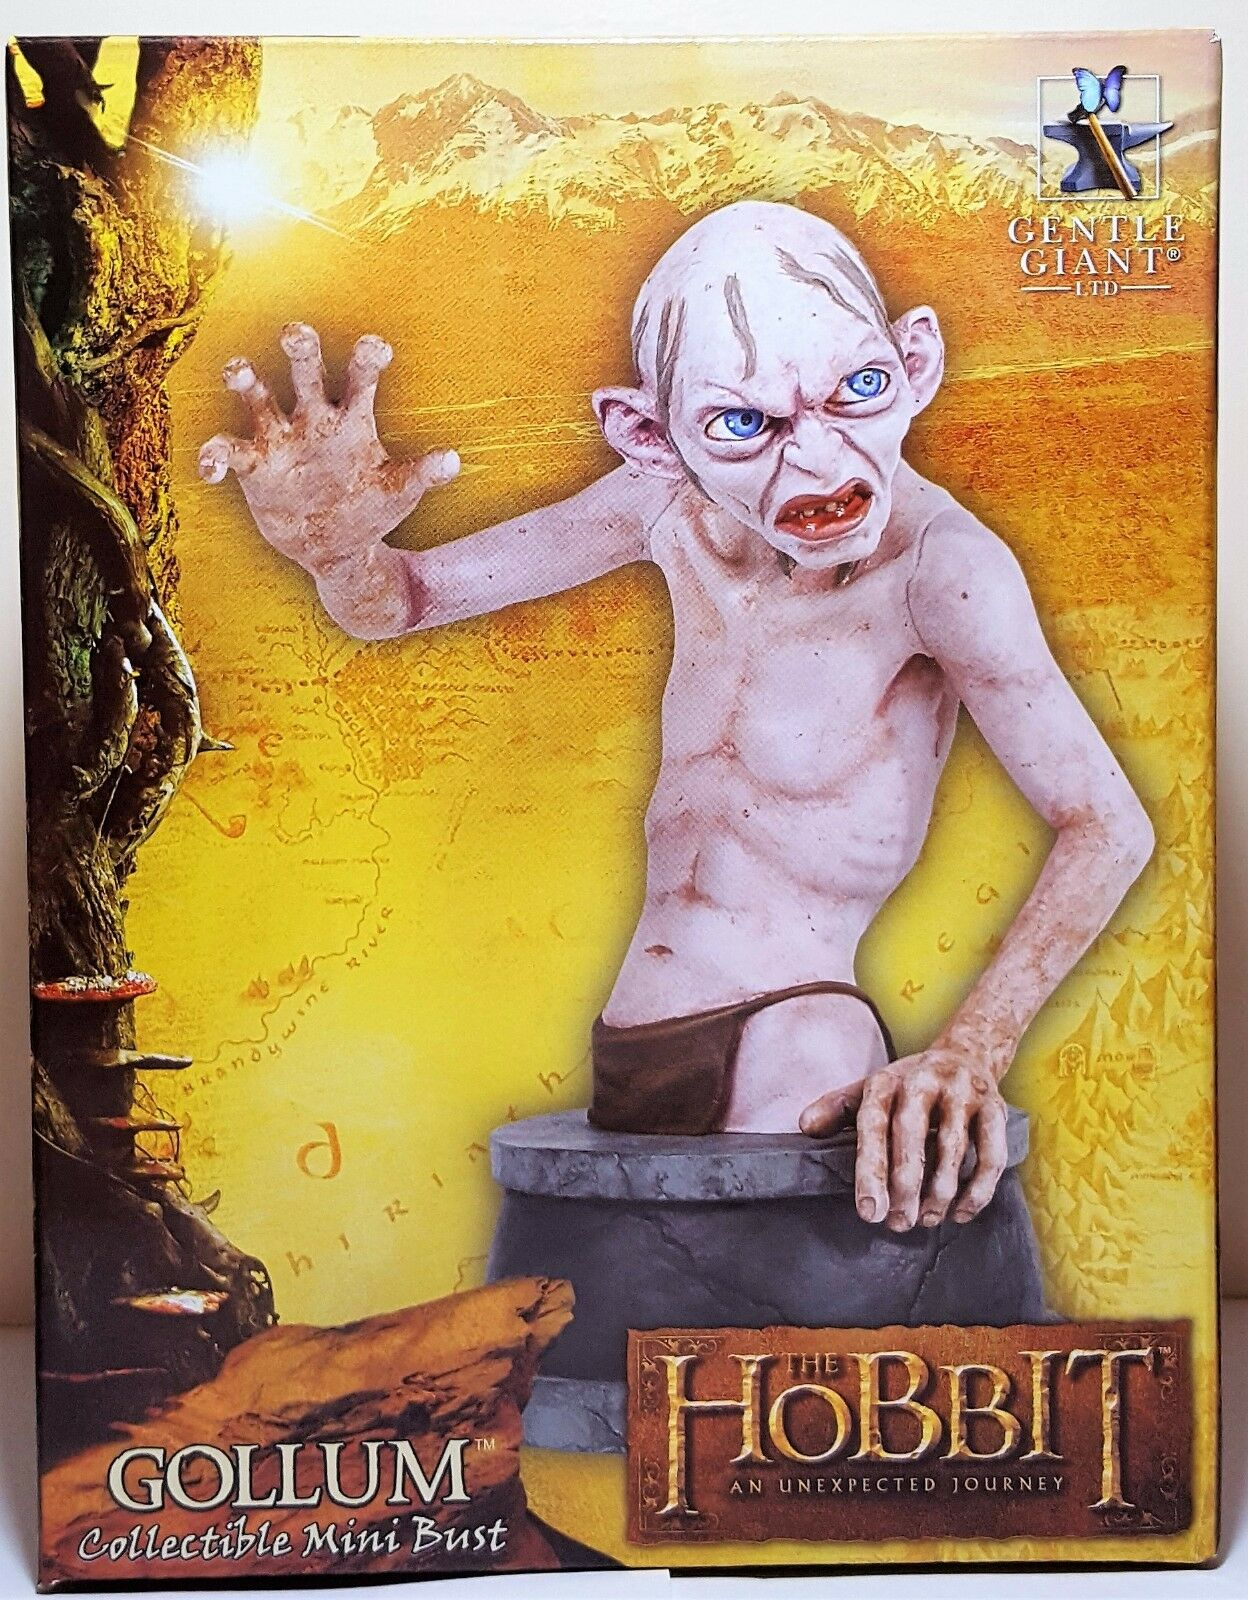 Gollum Collectible Mini autoautobust The Hobbit  An Unexpected  Journey Gentle Giant  negozio di moda in vendita